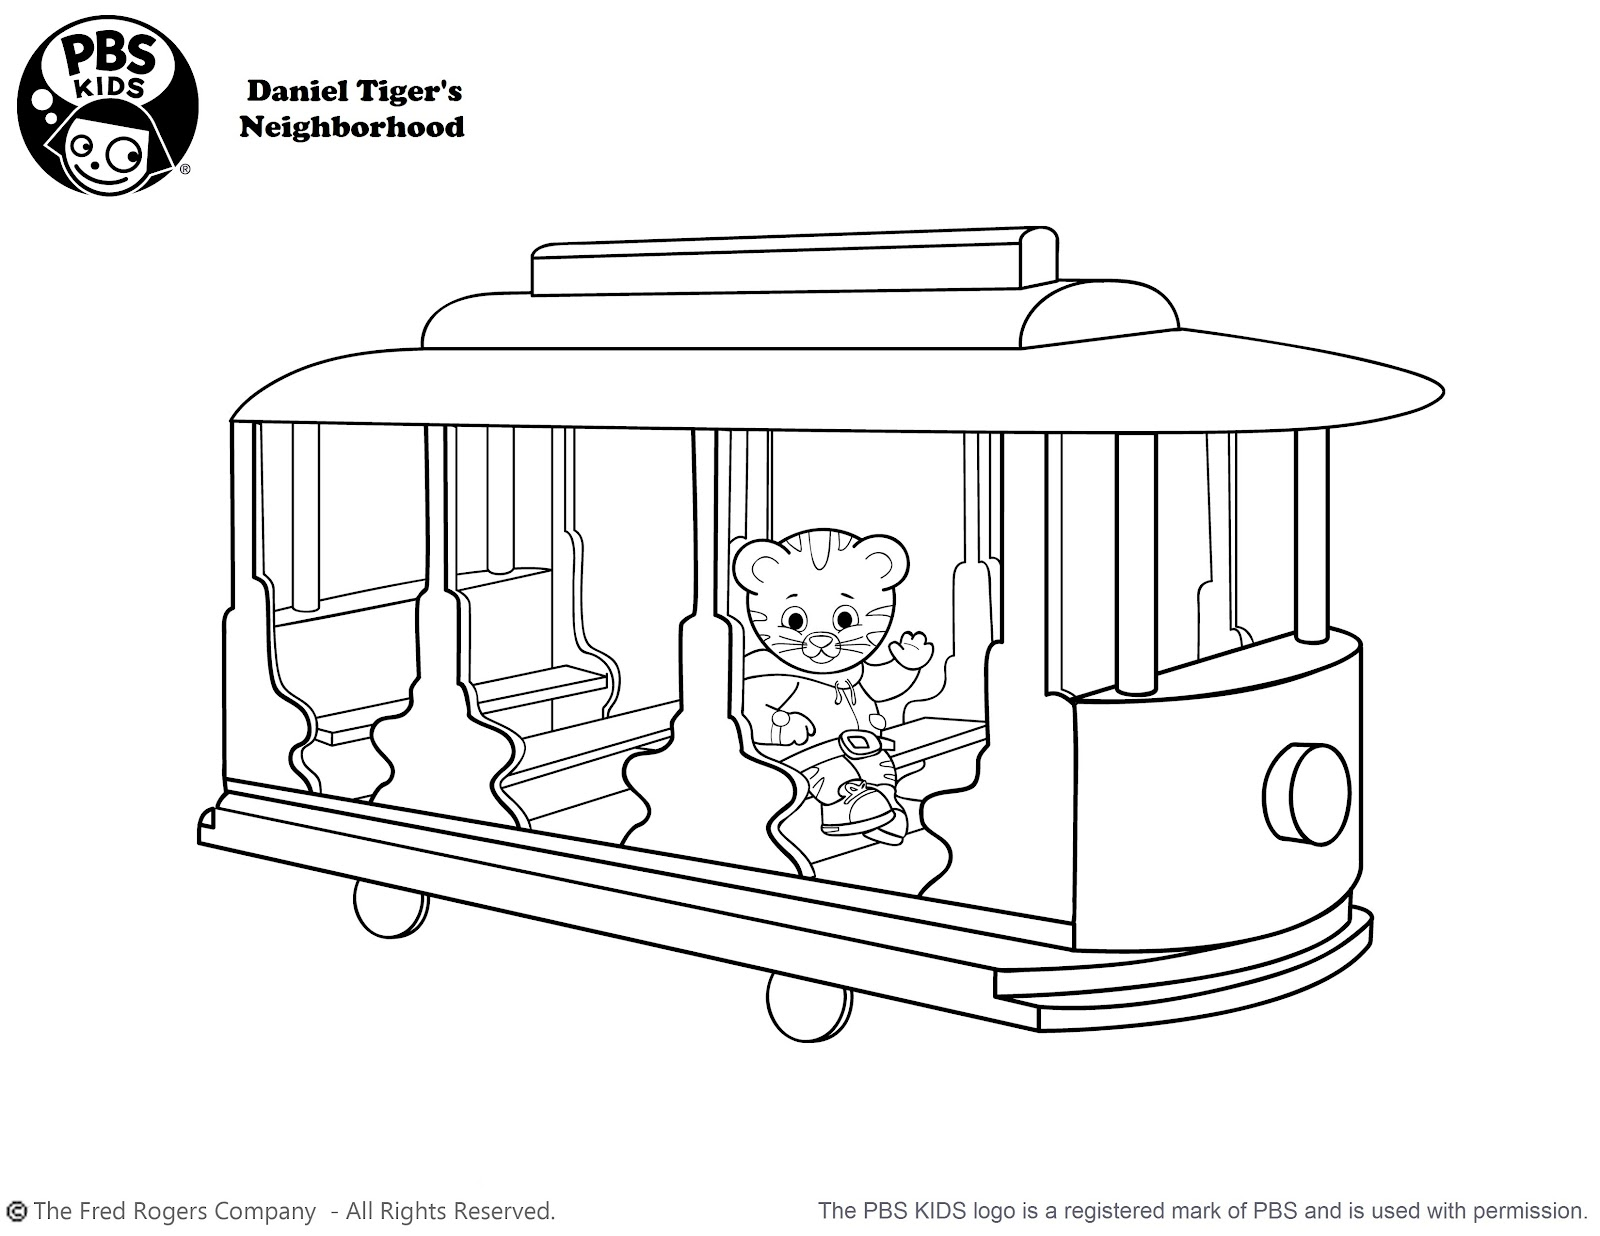 daniel tiger family coloring pages - photo#24